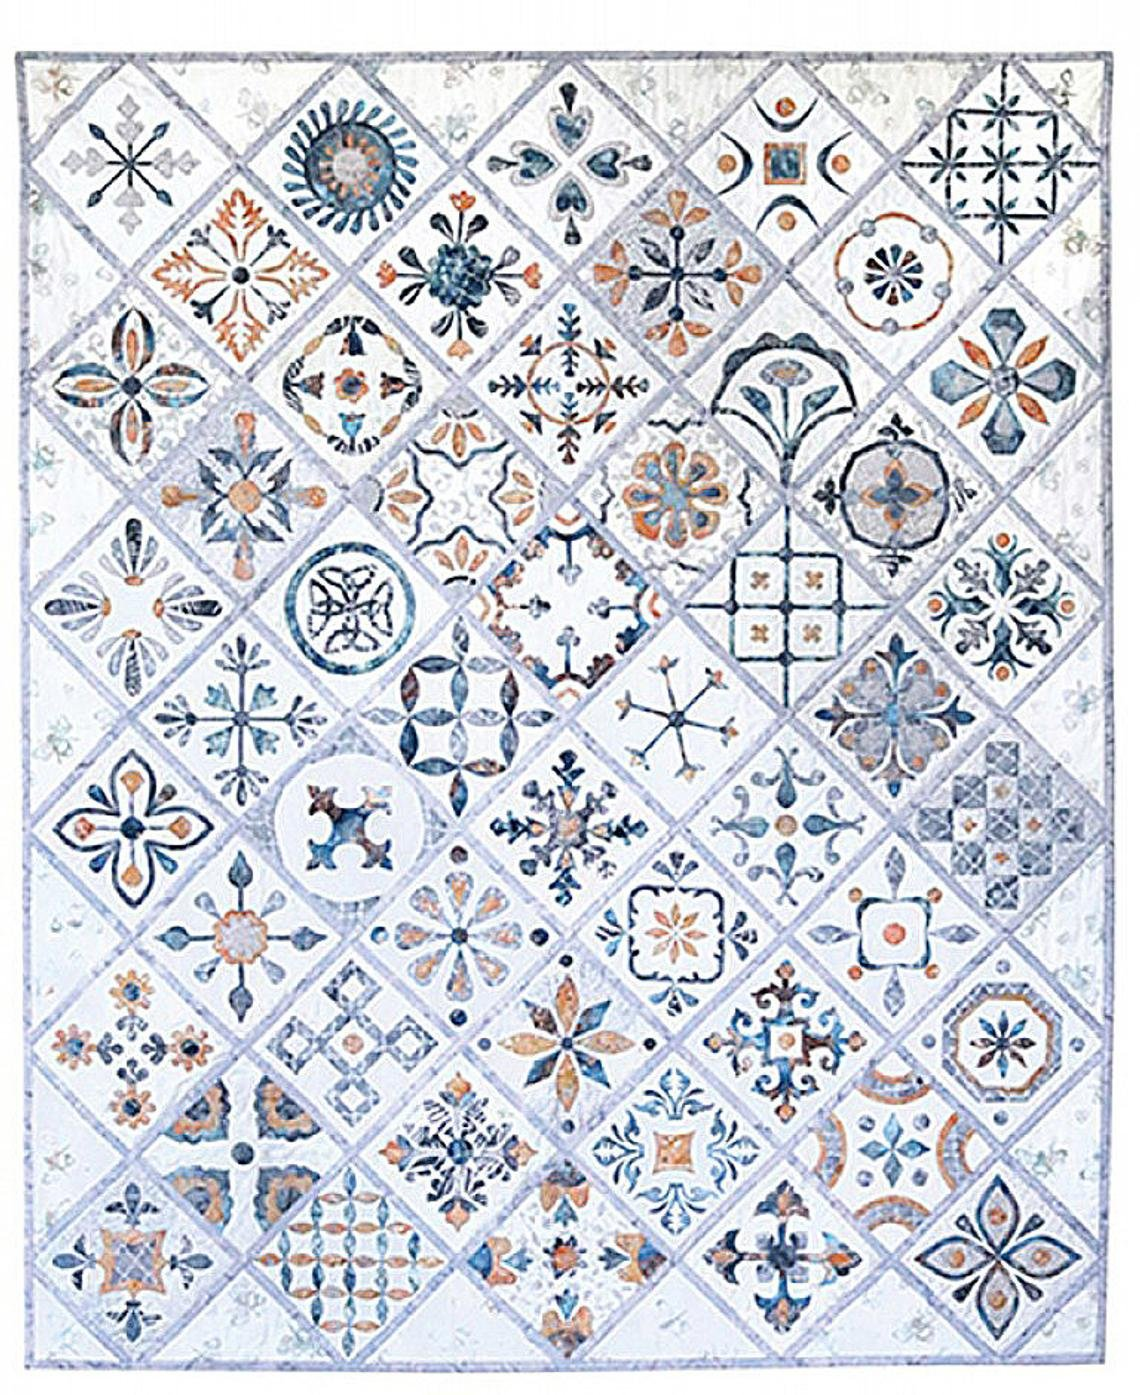 Hoffman Metro Tiles Quilt As You Go Kit by Susan Claire Mayfield 50 Blocks in all